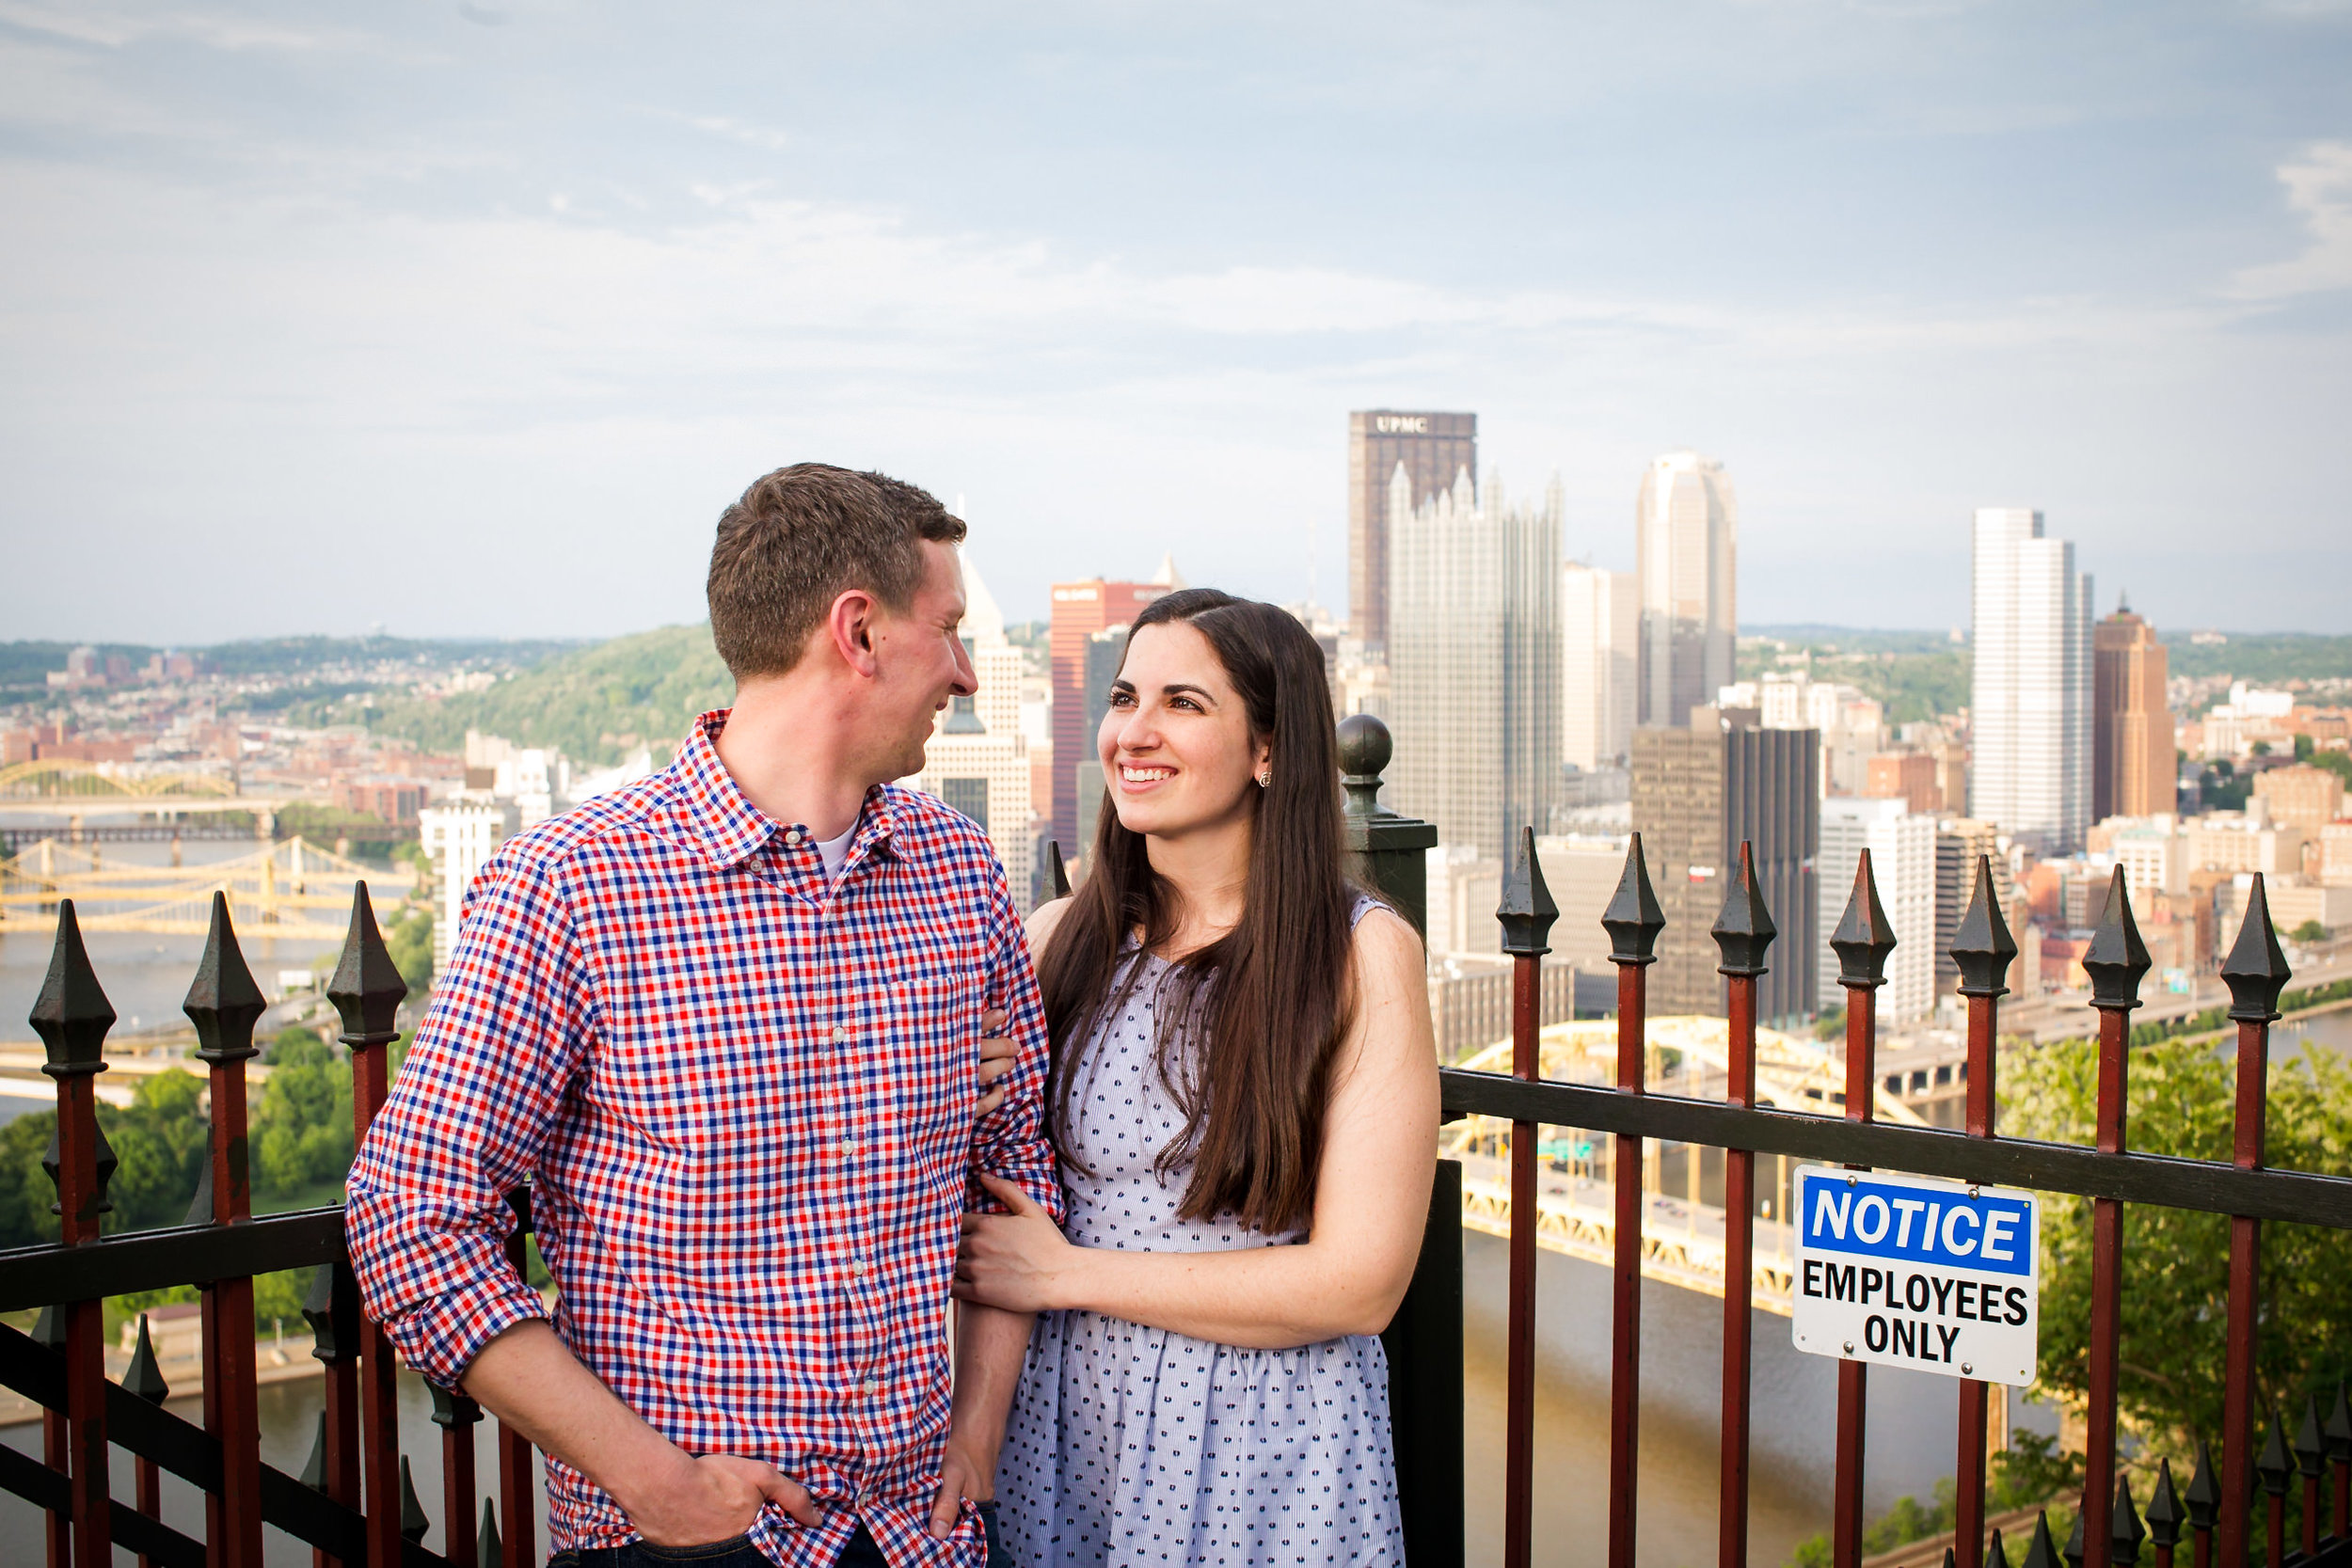 Station Square Duquesne Incline Wedding Engagement Picture locations-6.jpg